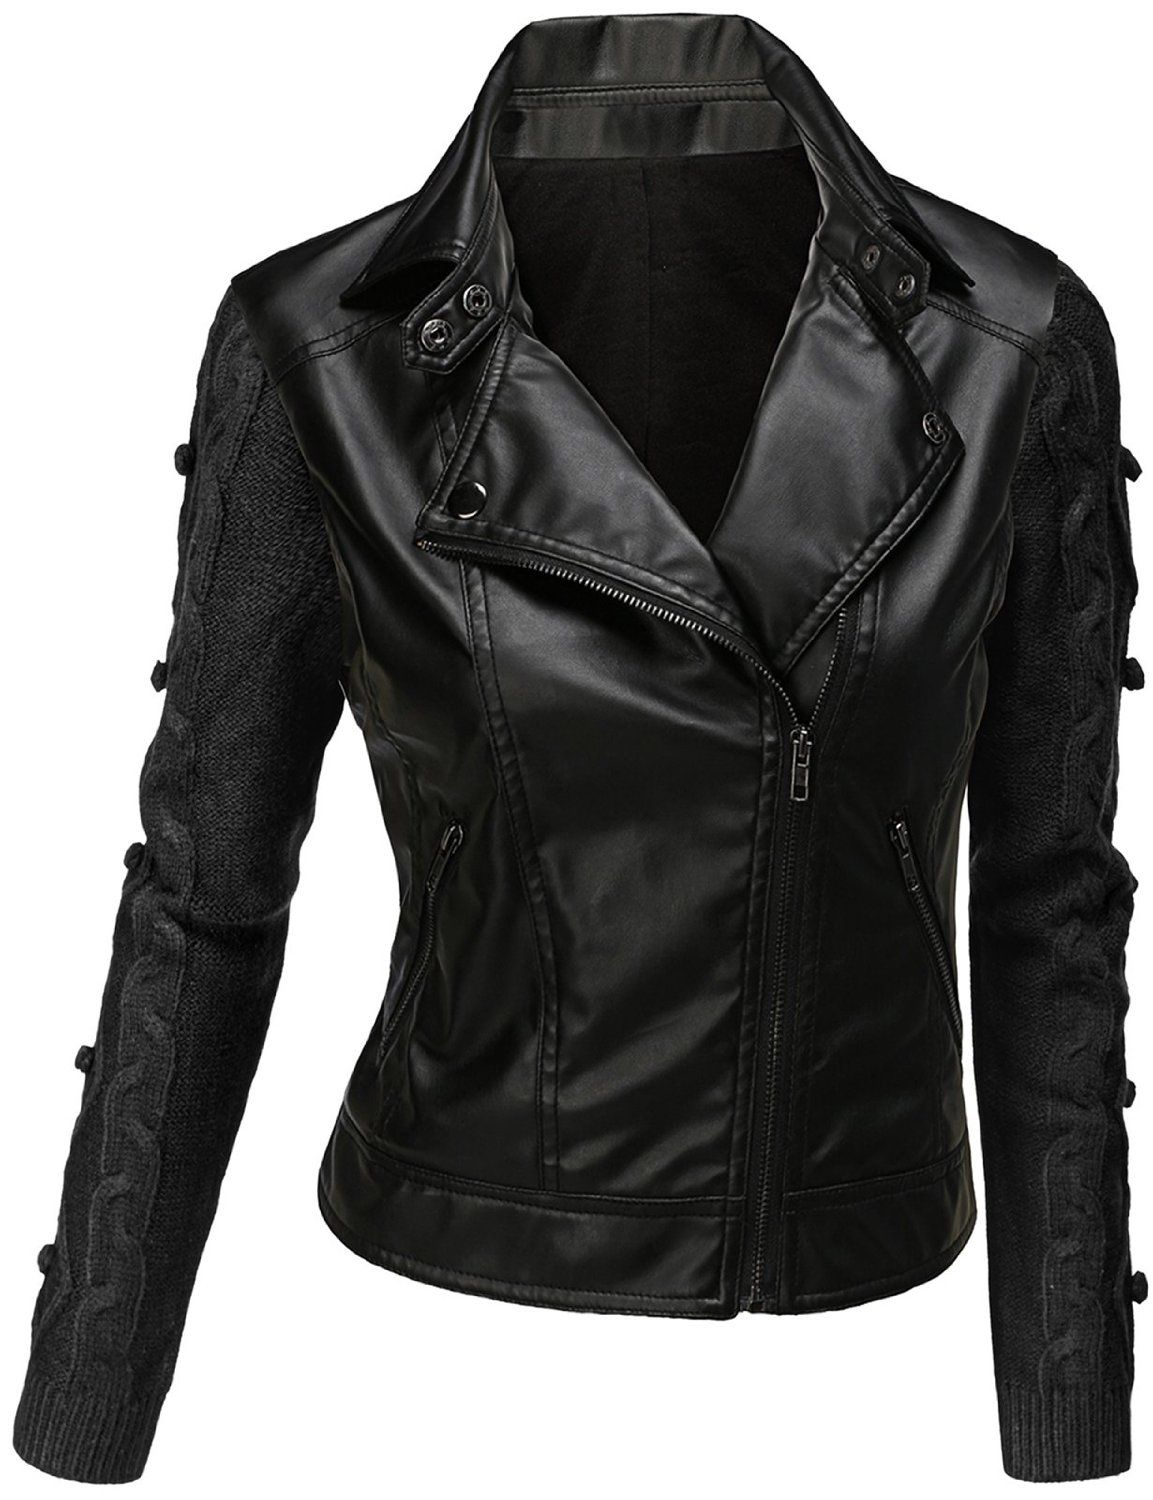 jacketers.com women motorcycle jackets (05) #womensjackets | All ...